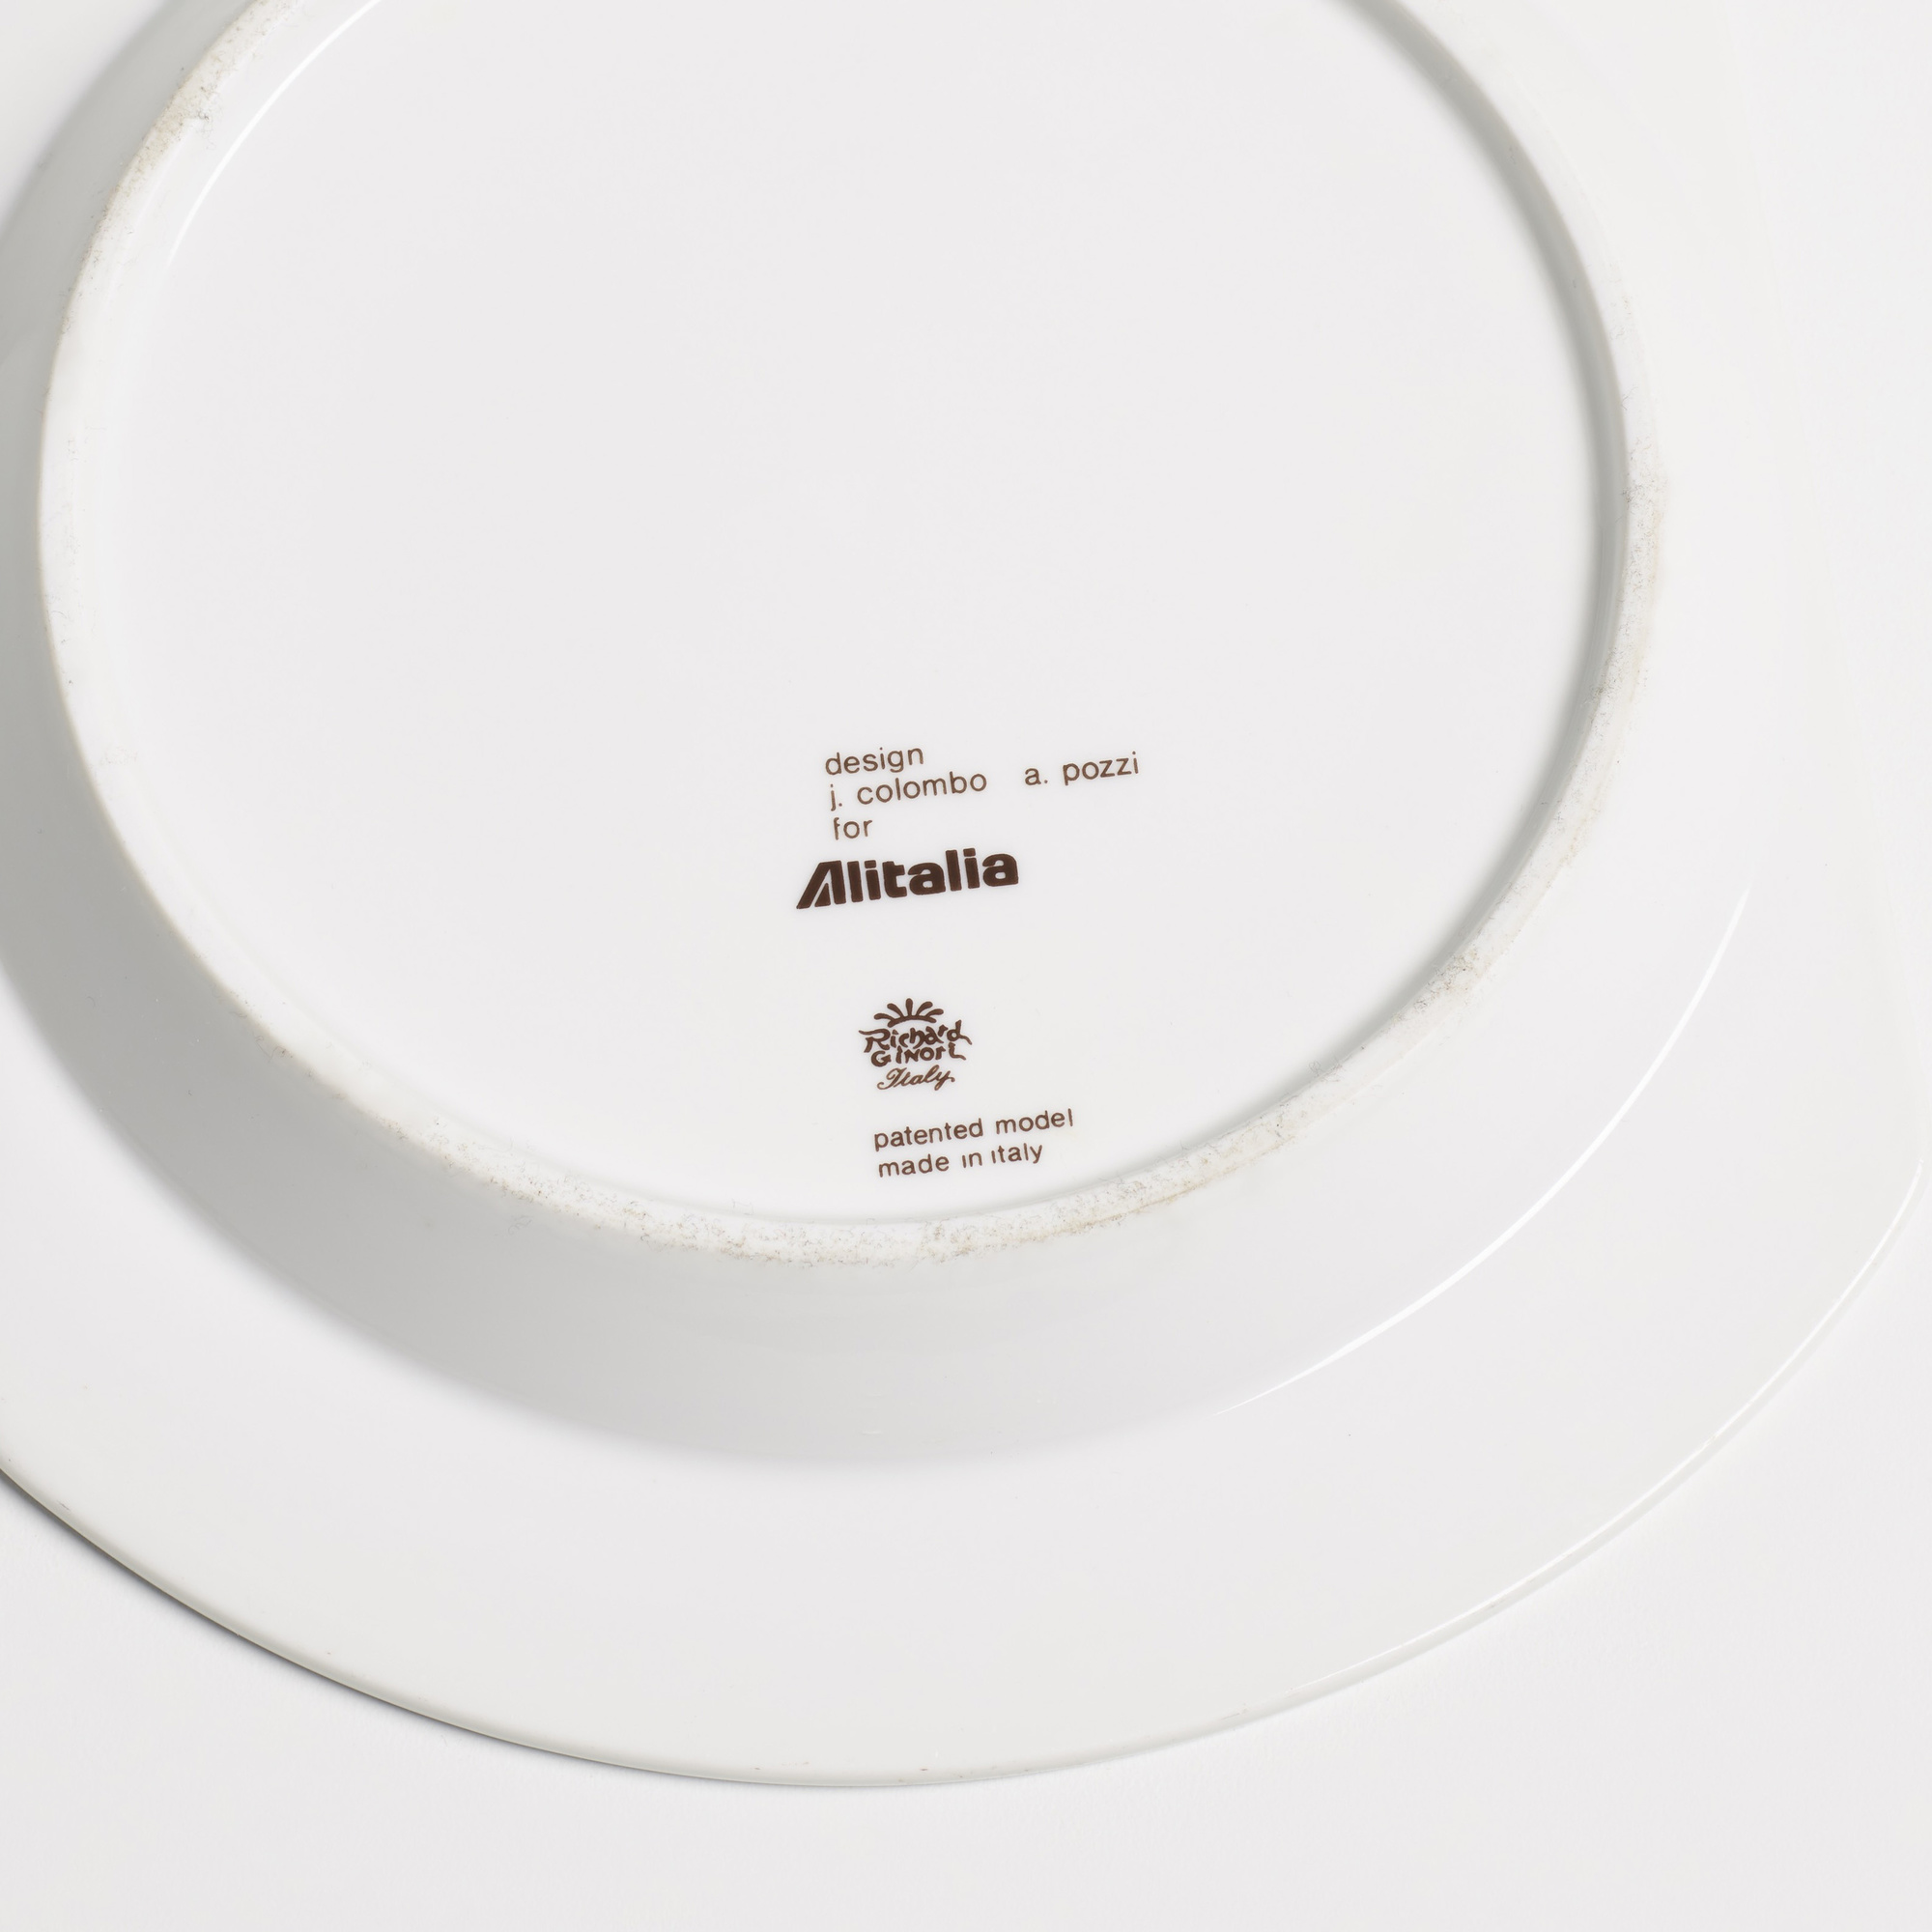 ... 298 Joe Colombo / Linea 72 tableware for Alitalia (3 of 3)  sc 1 st  Wright20 & 298: JOE COLOMBO Linea 72 tableware for Alitalia u003c Furniture Pimp ...